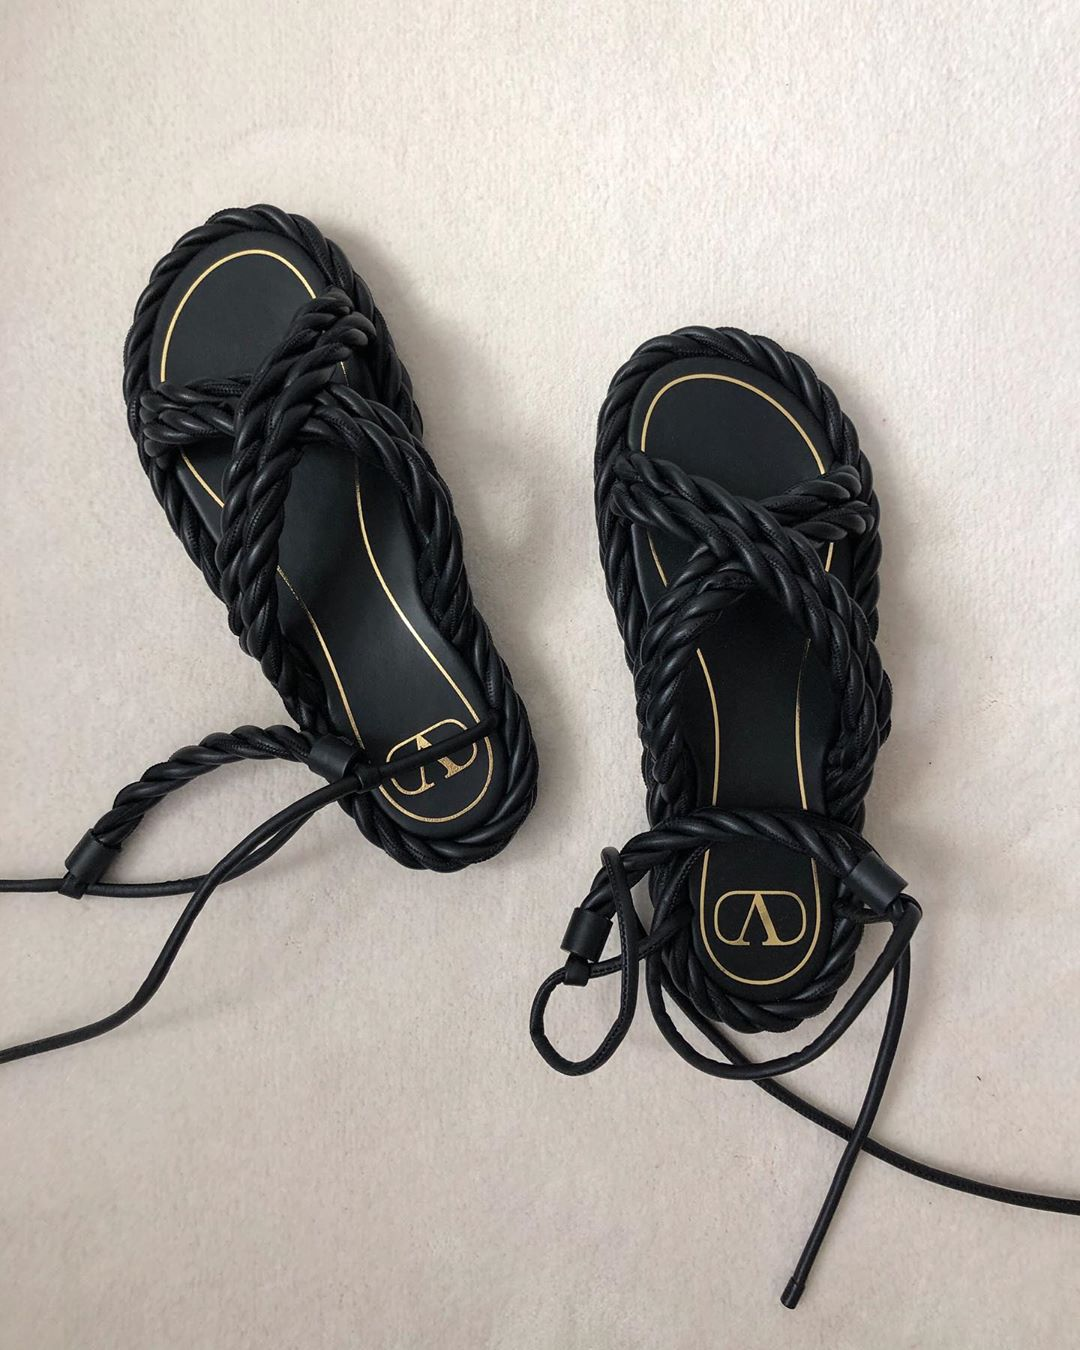 valentino-the-rope-ankle-tie-leather-sandals-black-jeanette-madsen-instagram